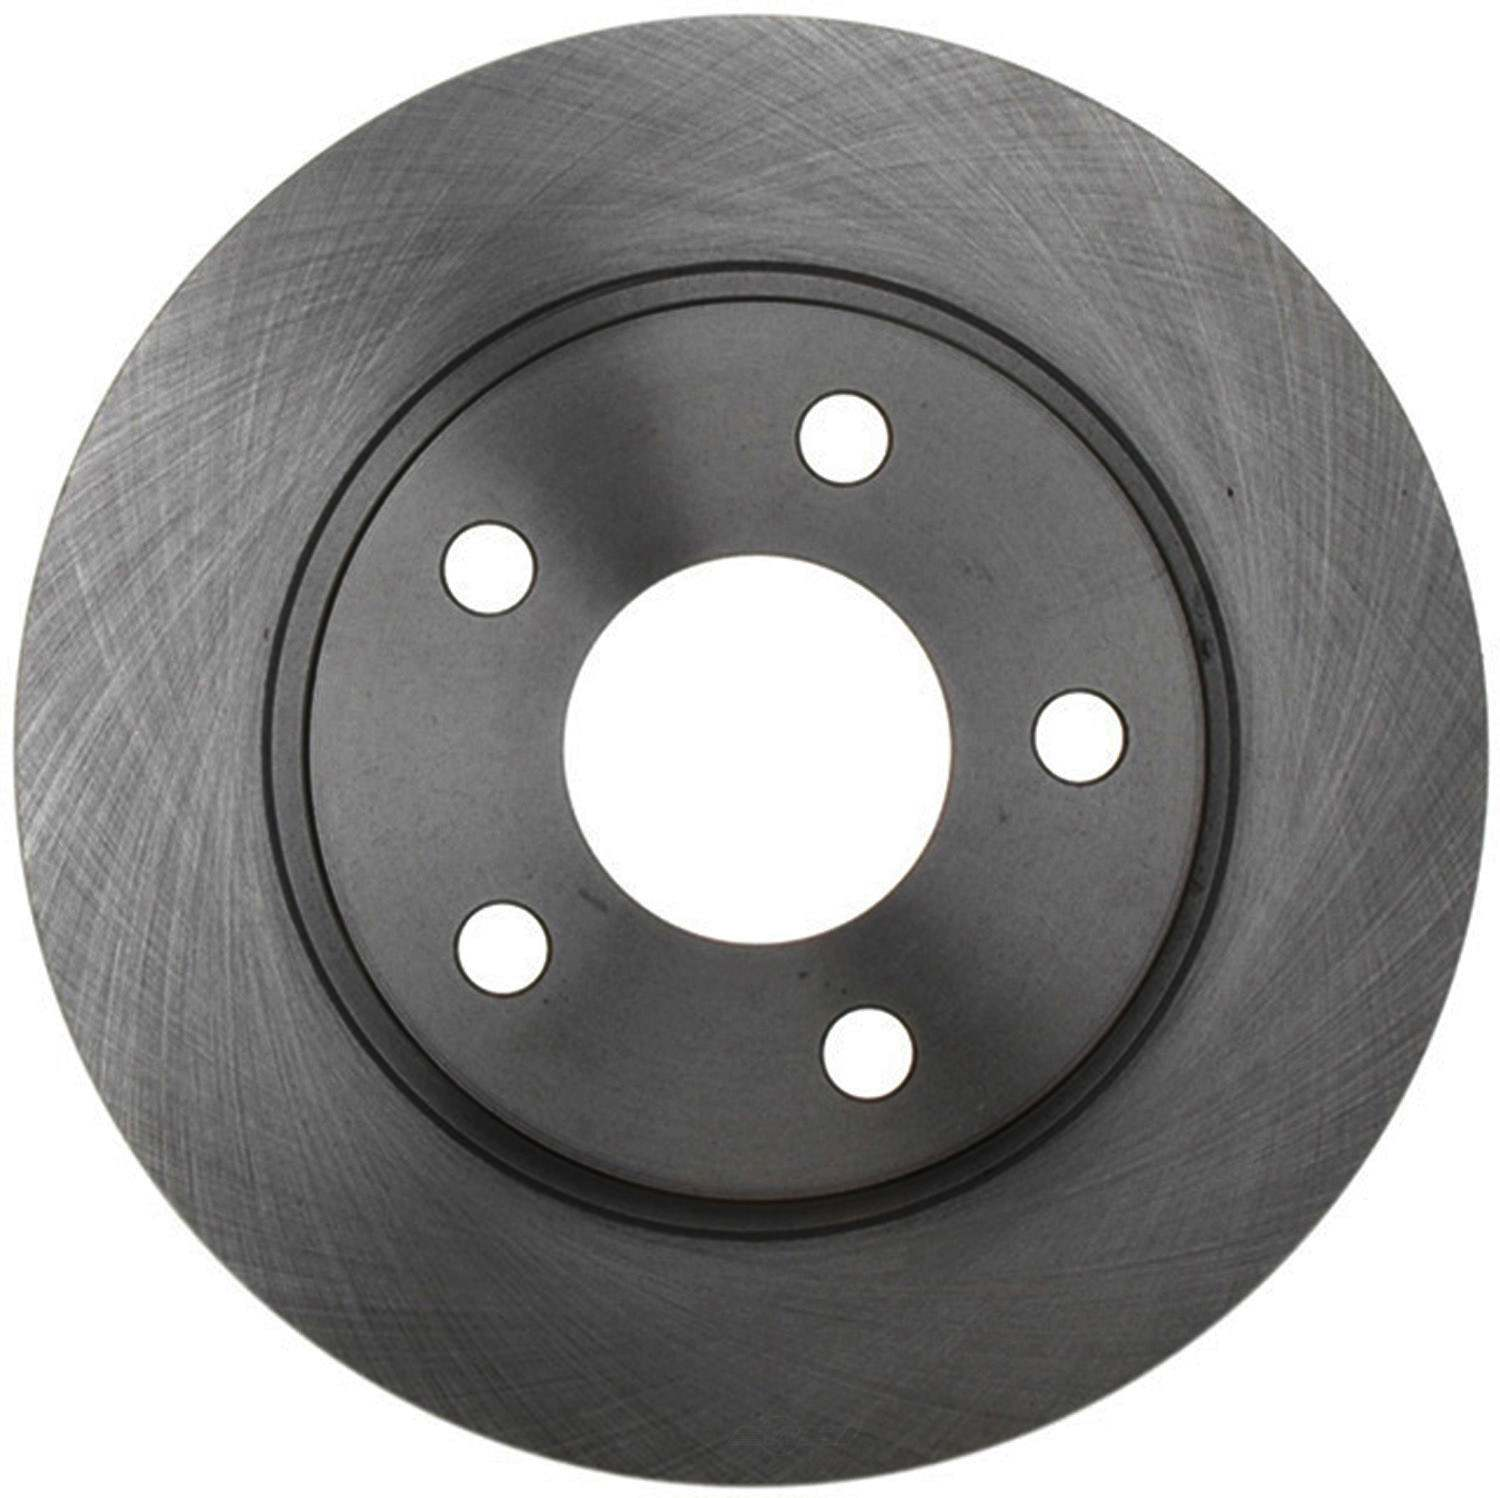 ACDELCO ADVANTAGE - Non-Coated Disc Brake Rotor (Rear) - DCD 18A623A